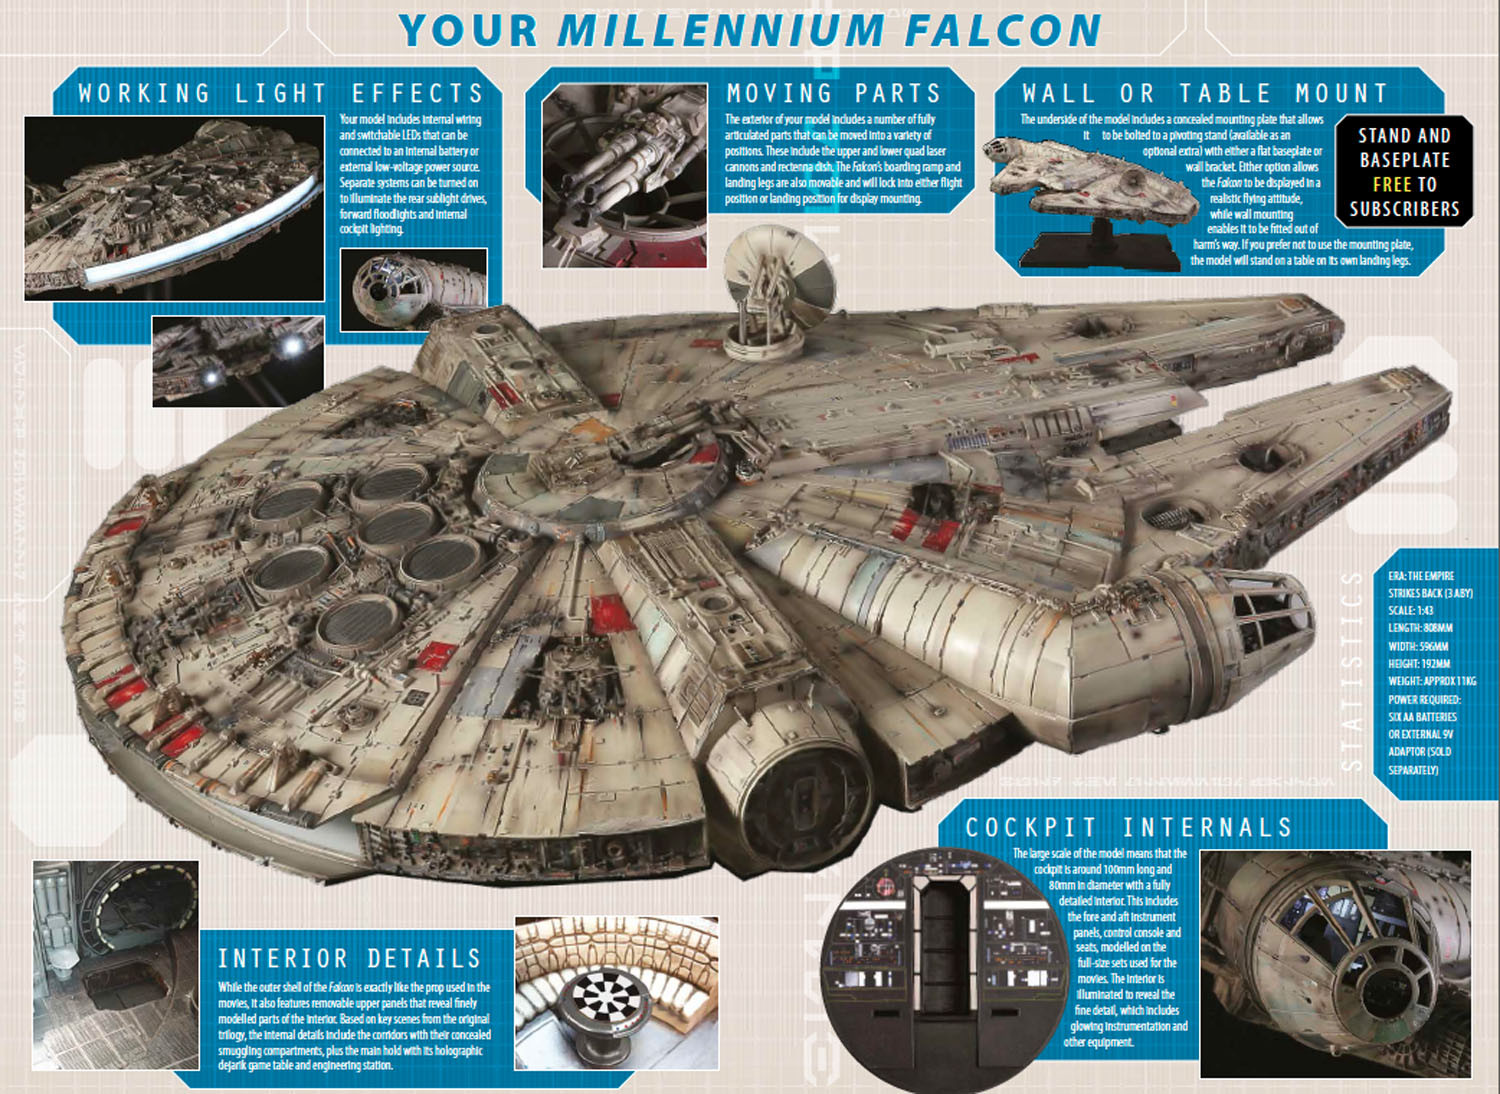 Displaying images for millenium falcon cockpit wallpaper -  Build The Star Wars Millennium Falcon In 1 1 Scale